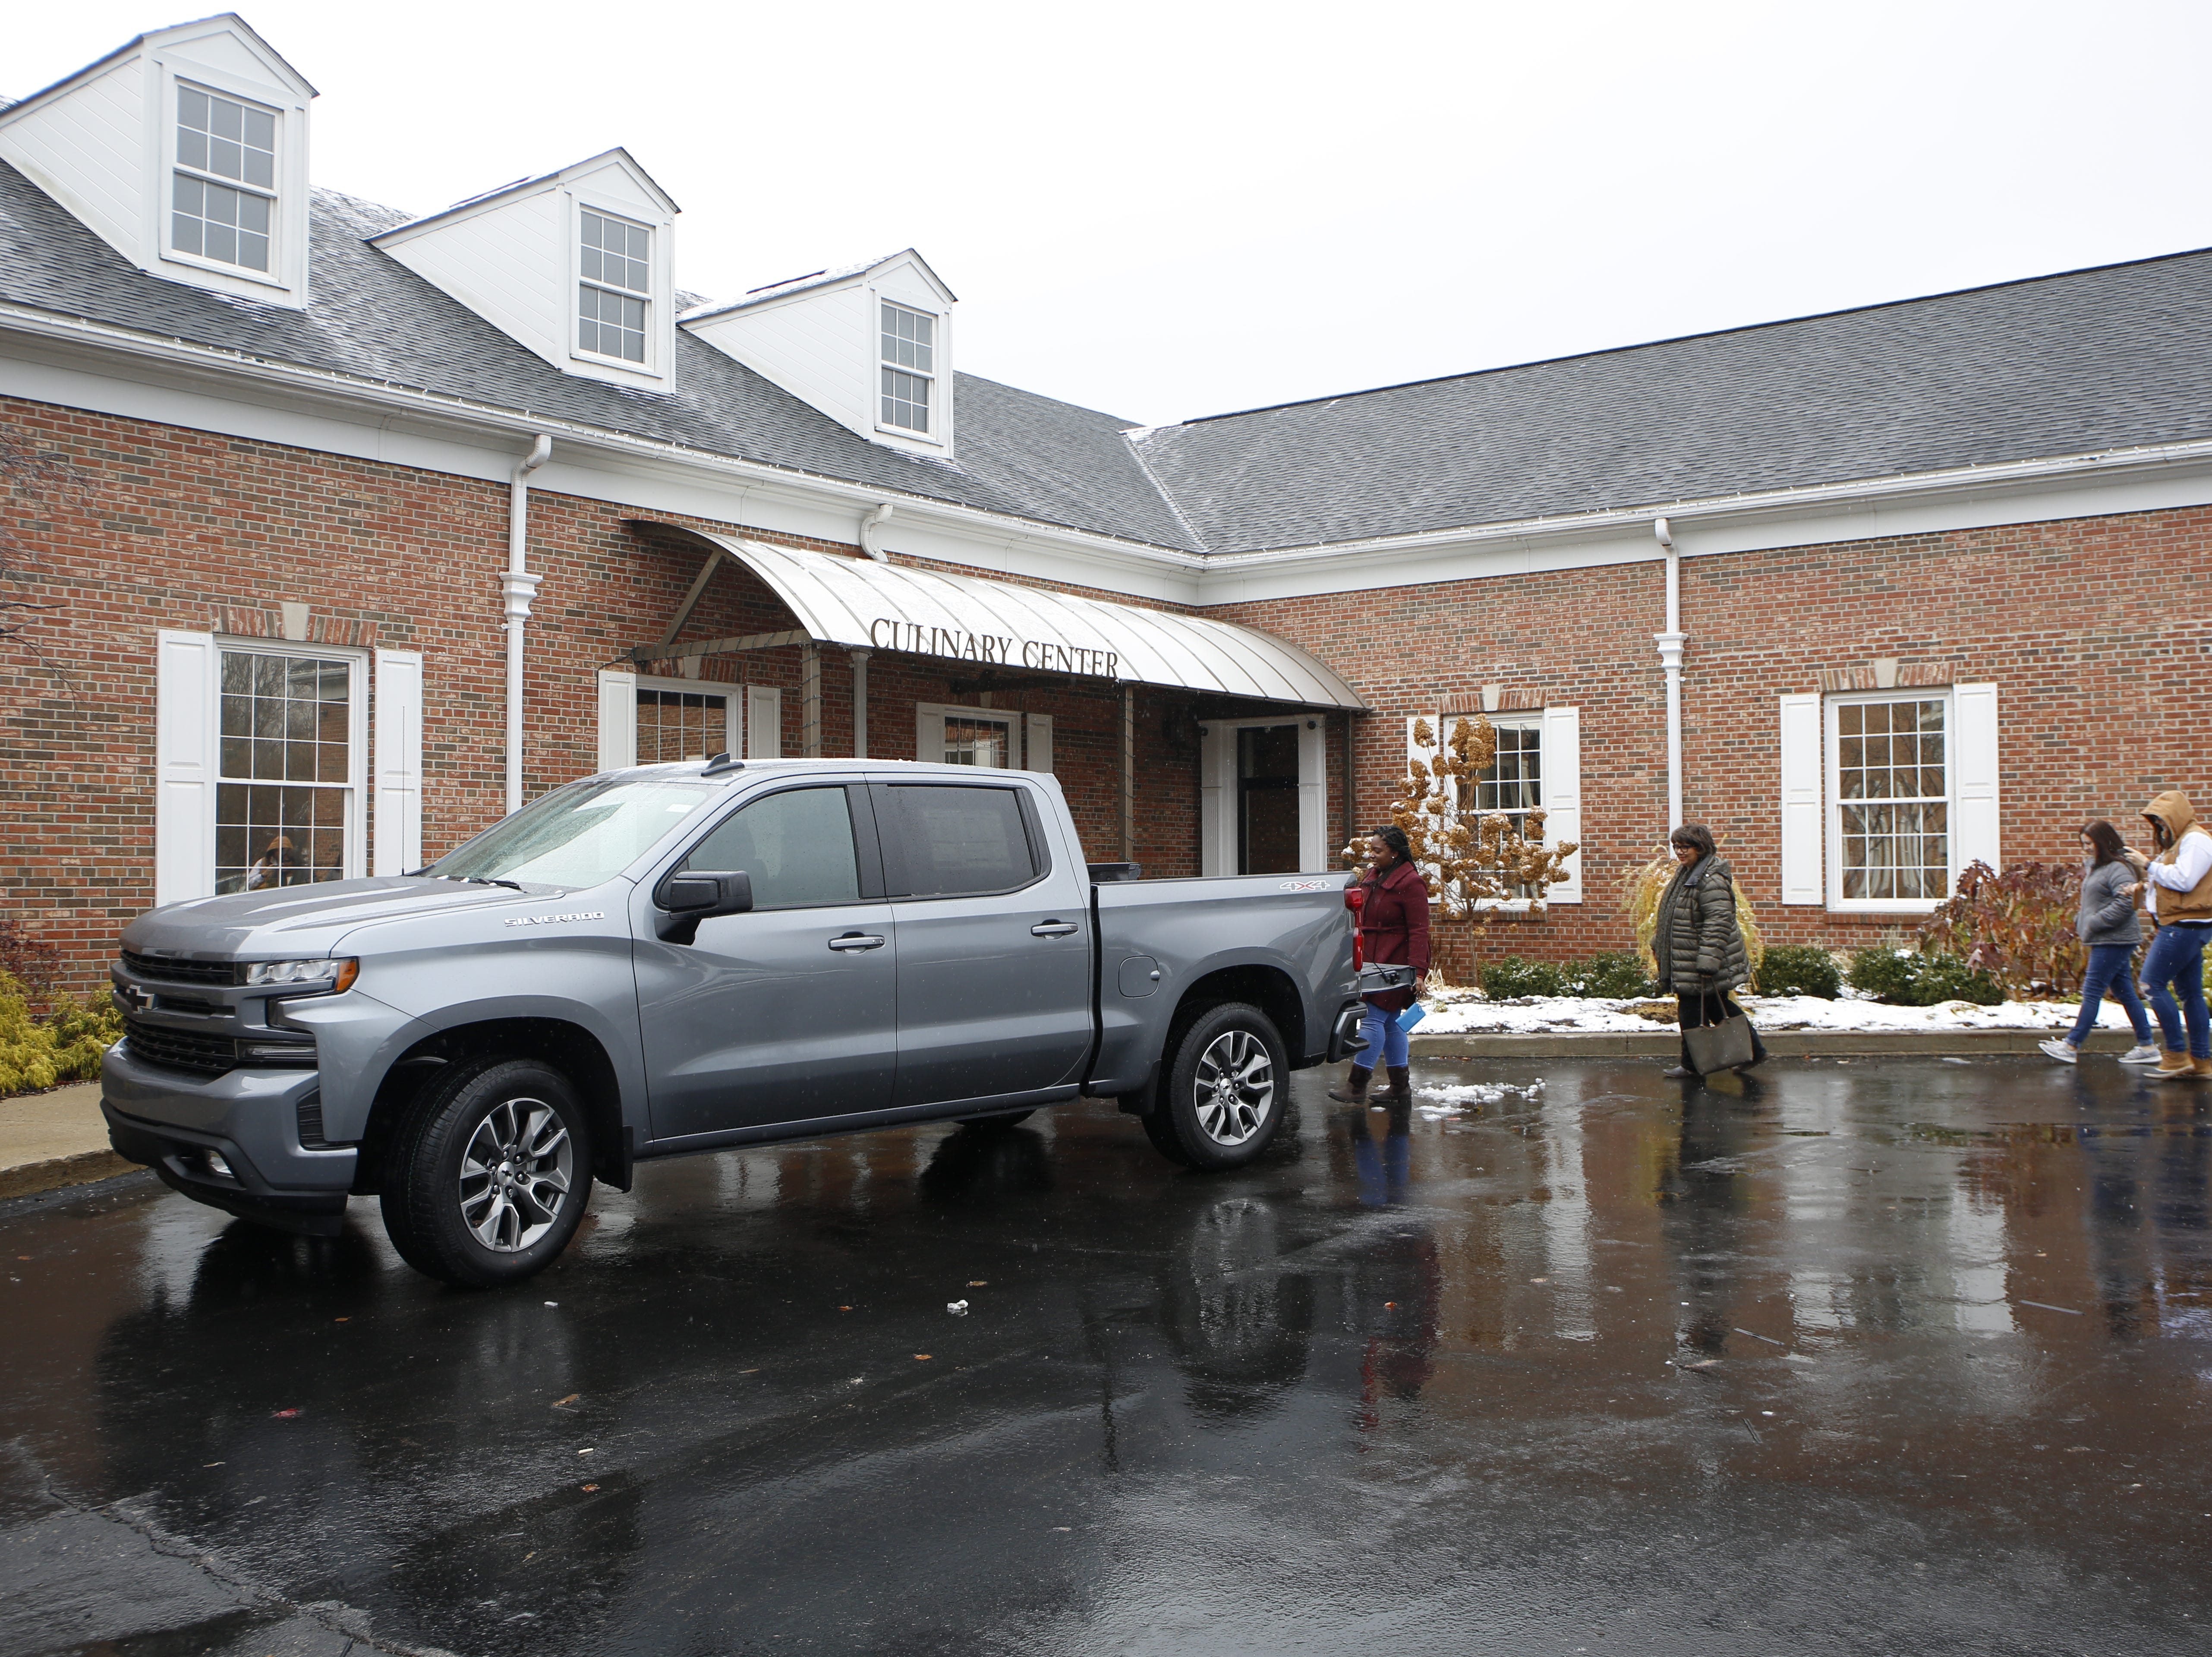 Guests arrive to the Whisked event sponsored by the Metro Detroit Chevy Dealers dropping off food donations for Forgotten Harvest into the bed of a Chevy Silverado at the Great Lakes Culinary Center in Southfield, Mich., Sunday, Nov. 18, 2018.